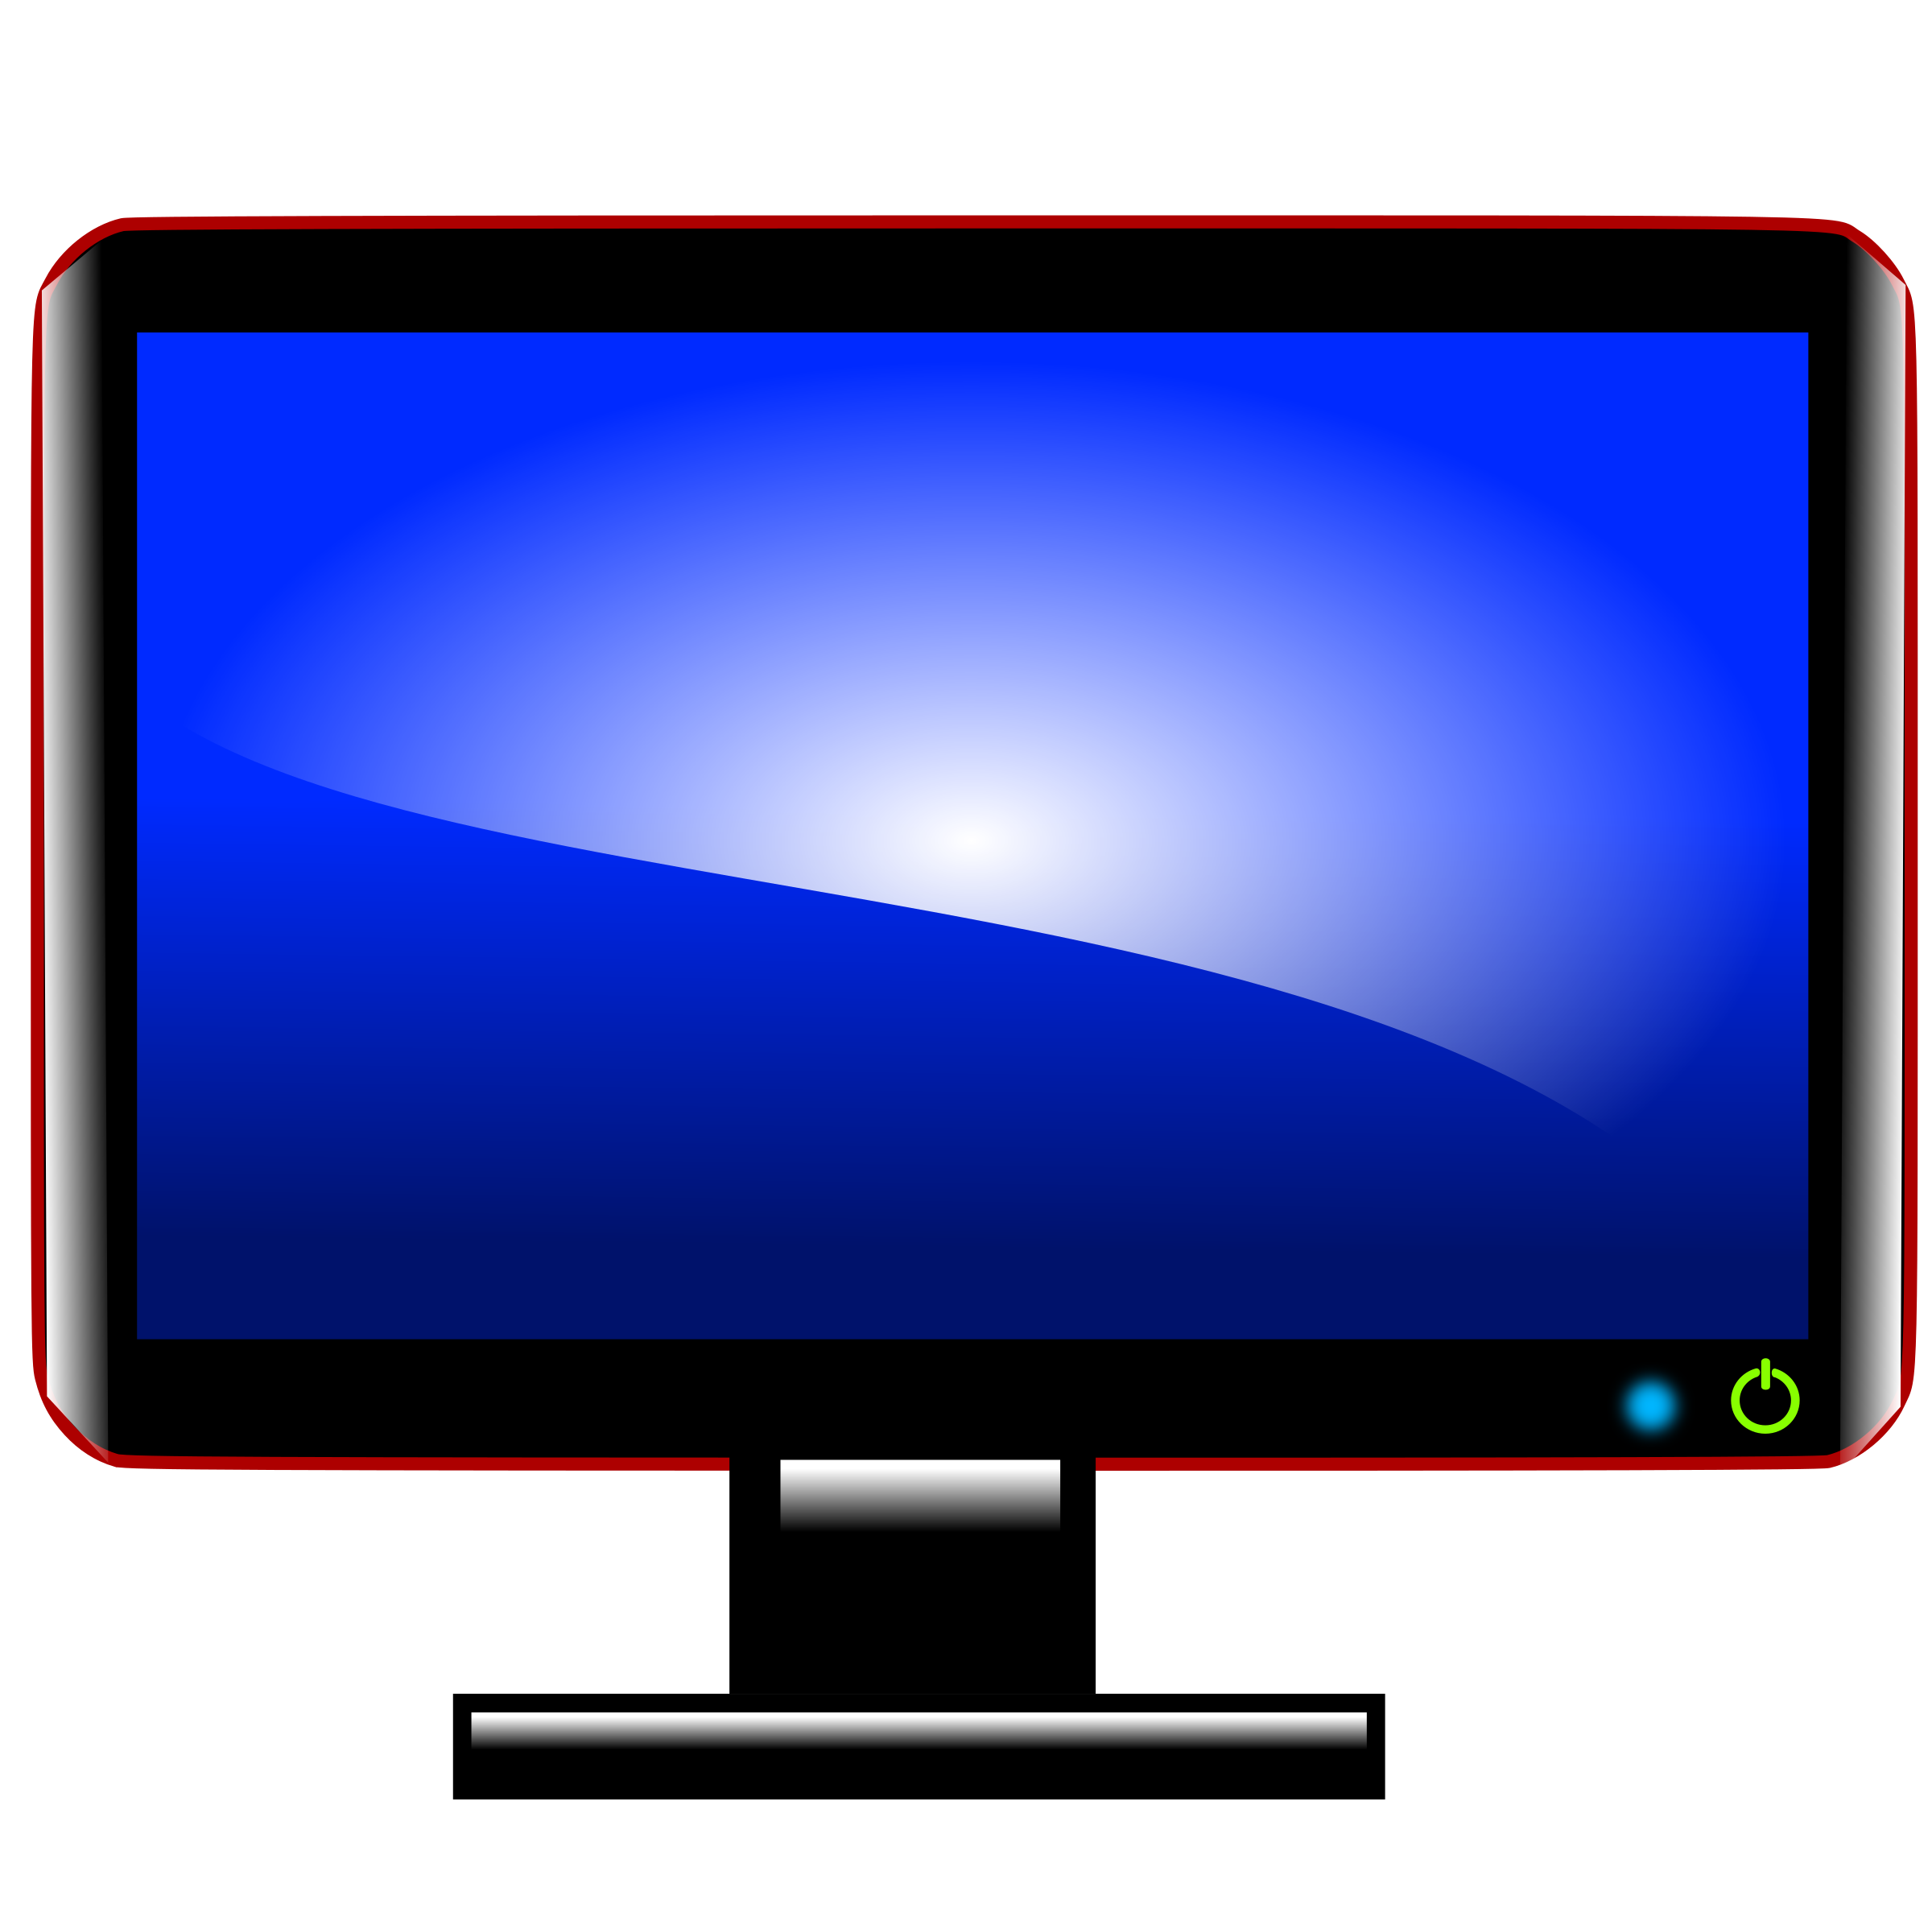 screen clipart computer background